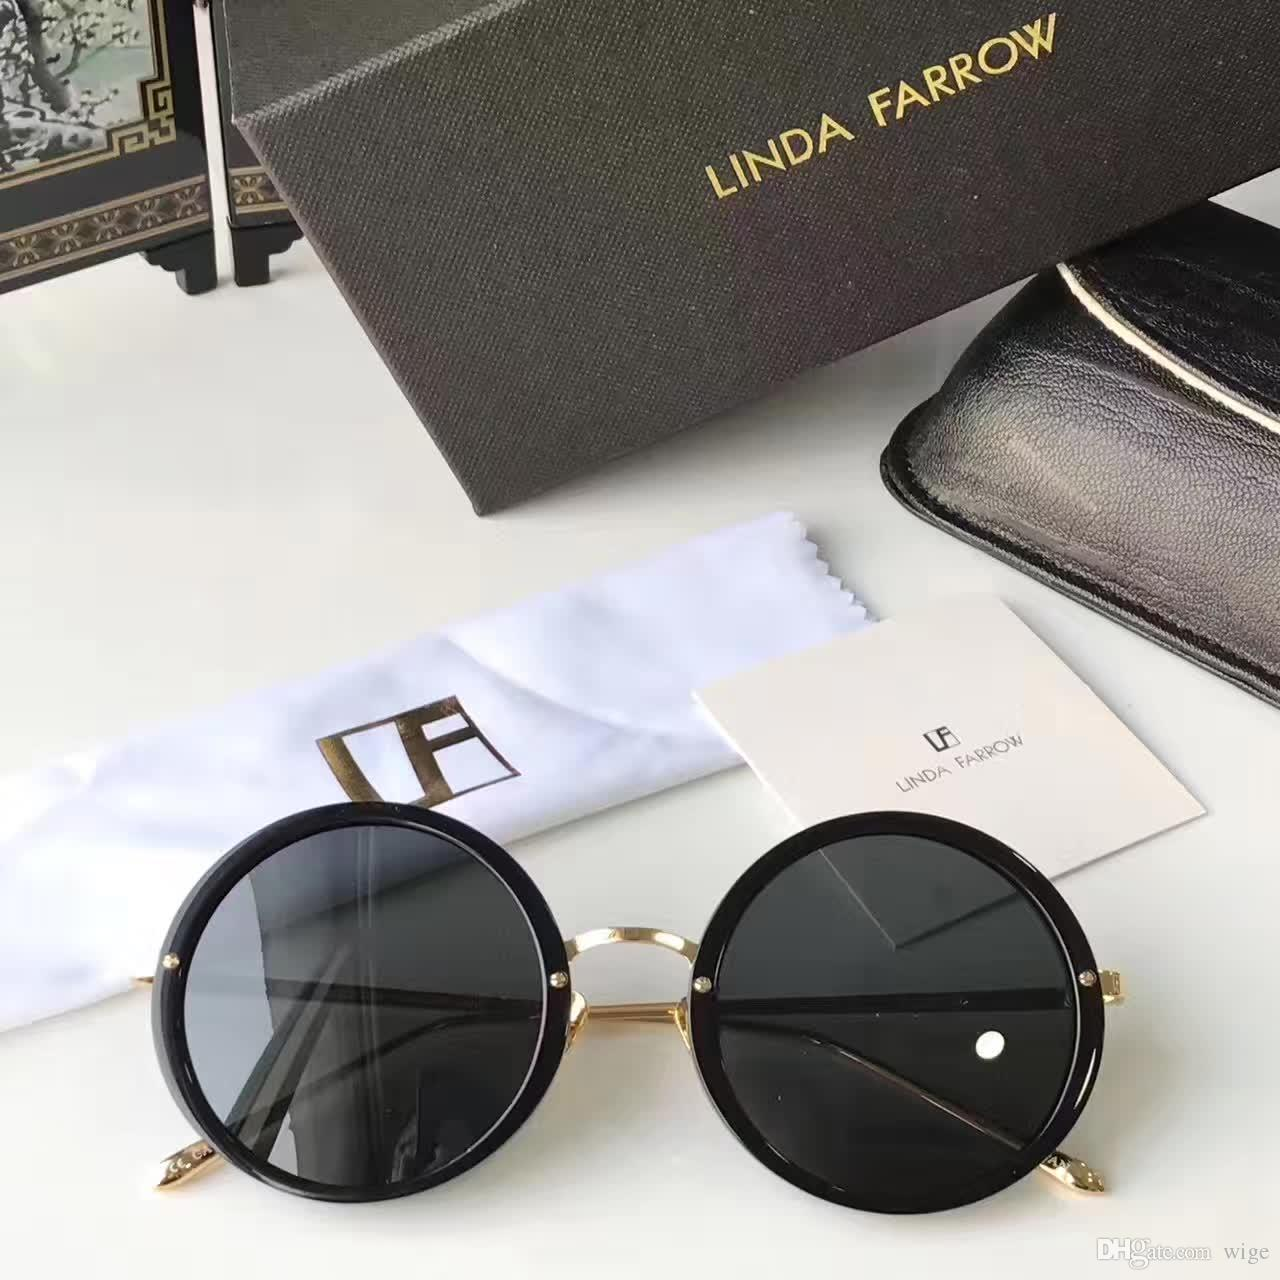 148cefaaa084 LINDA FARROW The Row Black Round Frame Sunglasses Fashion Sunglasses Eyewear  Brand New With Leather Case Cheap Sunglasses Mens Sunglasses From Wige